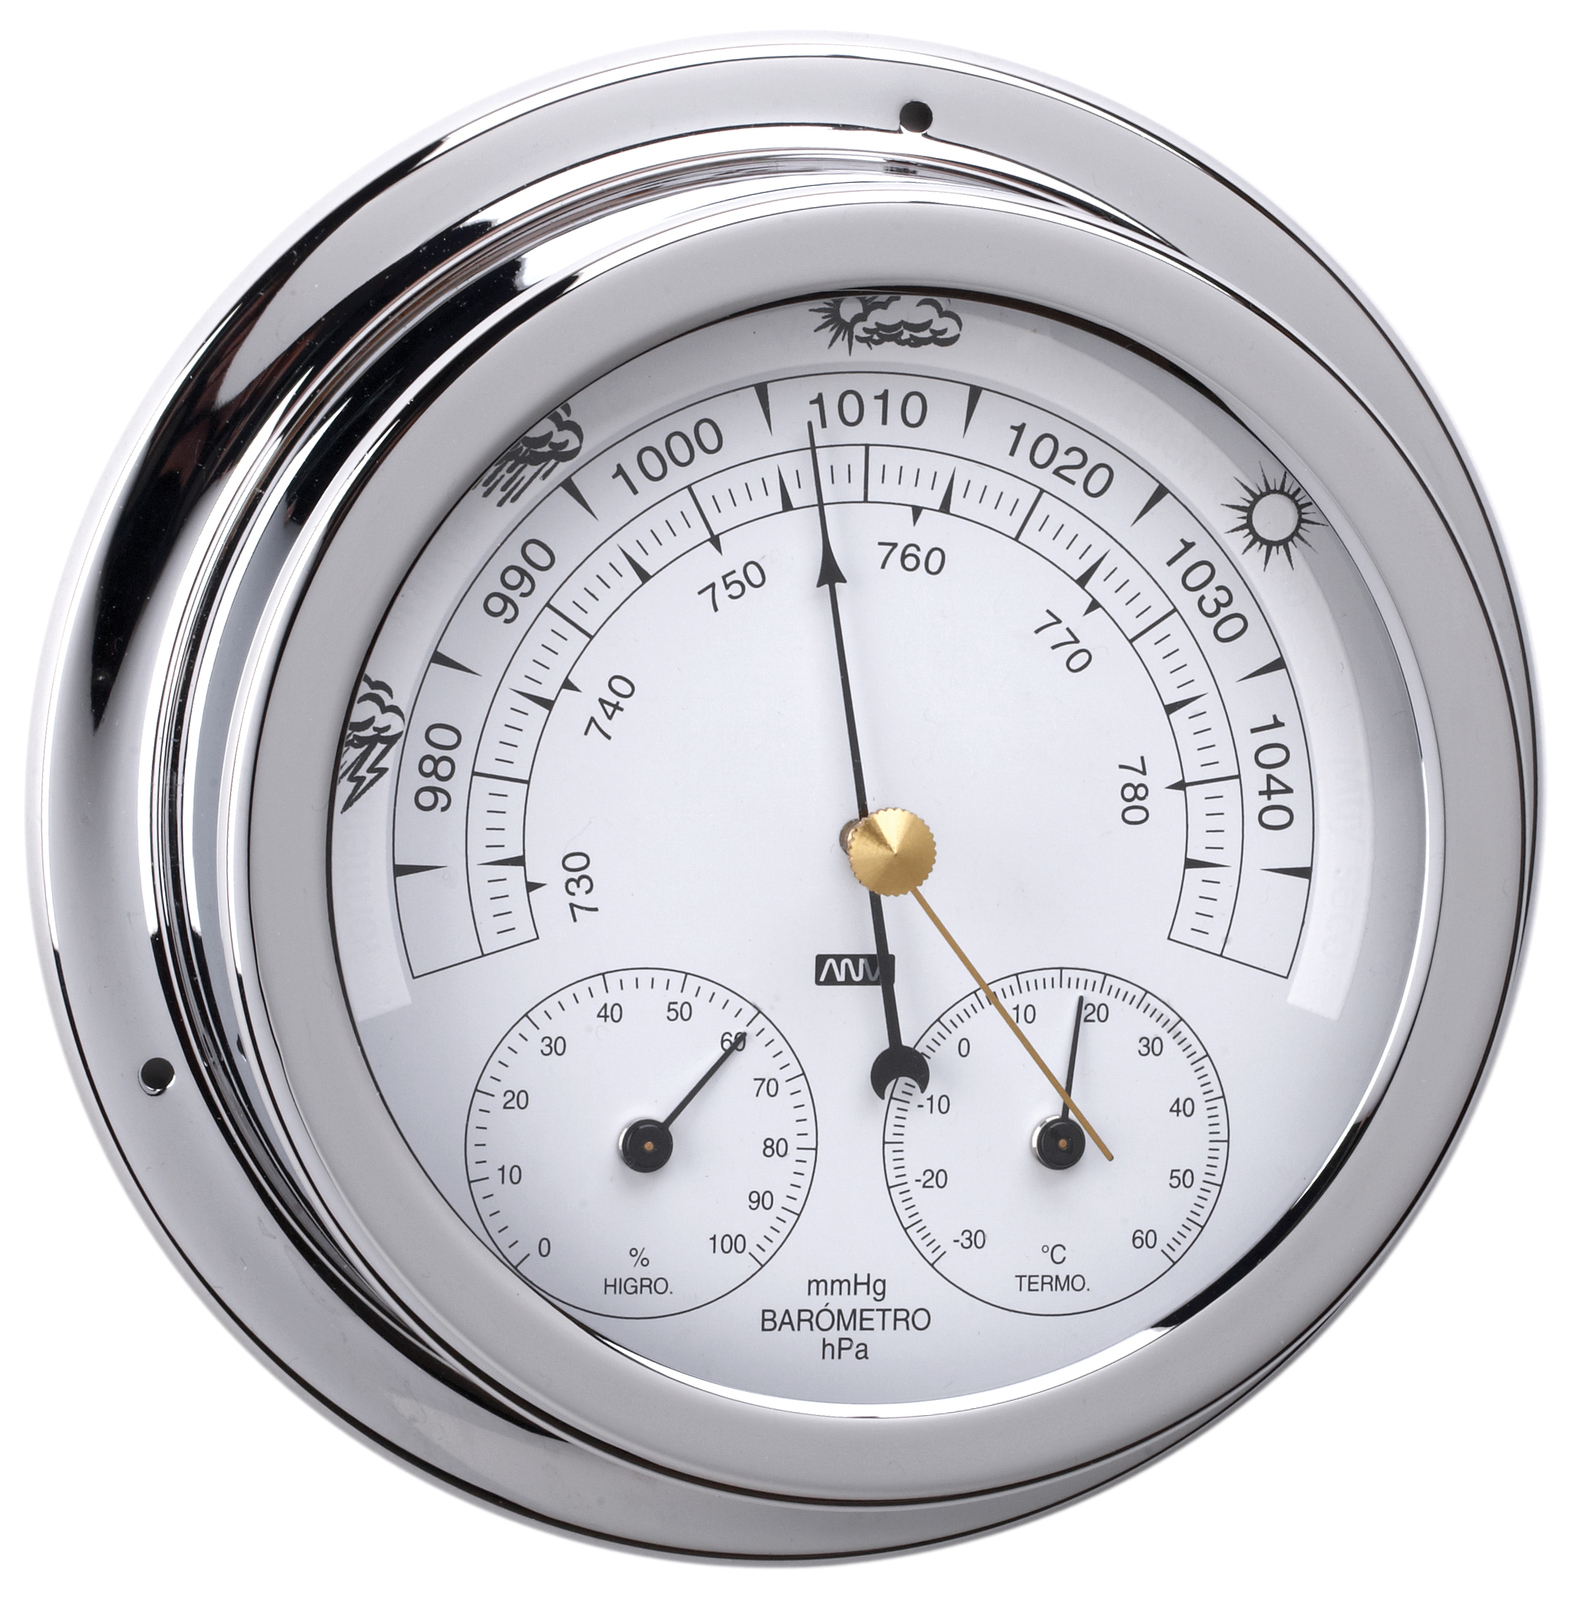 Chrome Brass Barometer, Thermometer And Hygrometer 120mm Face